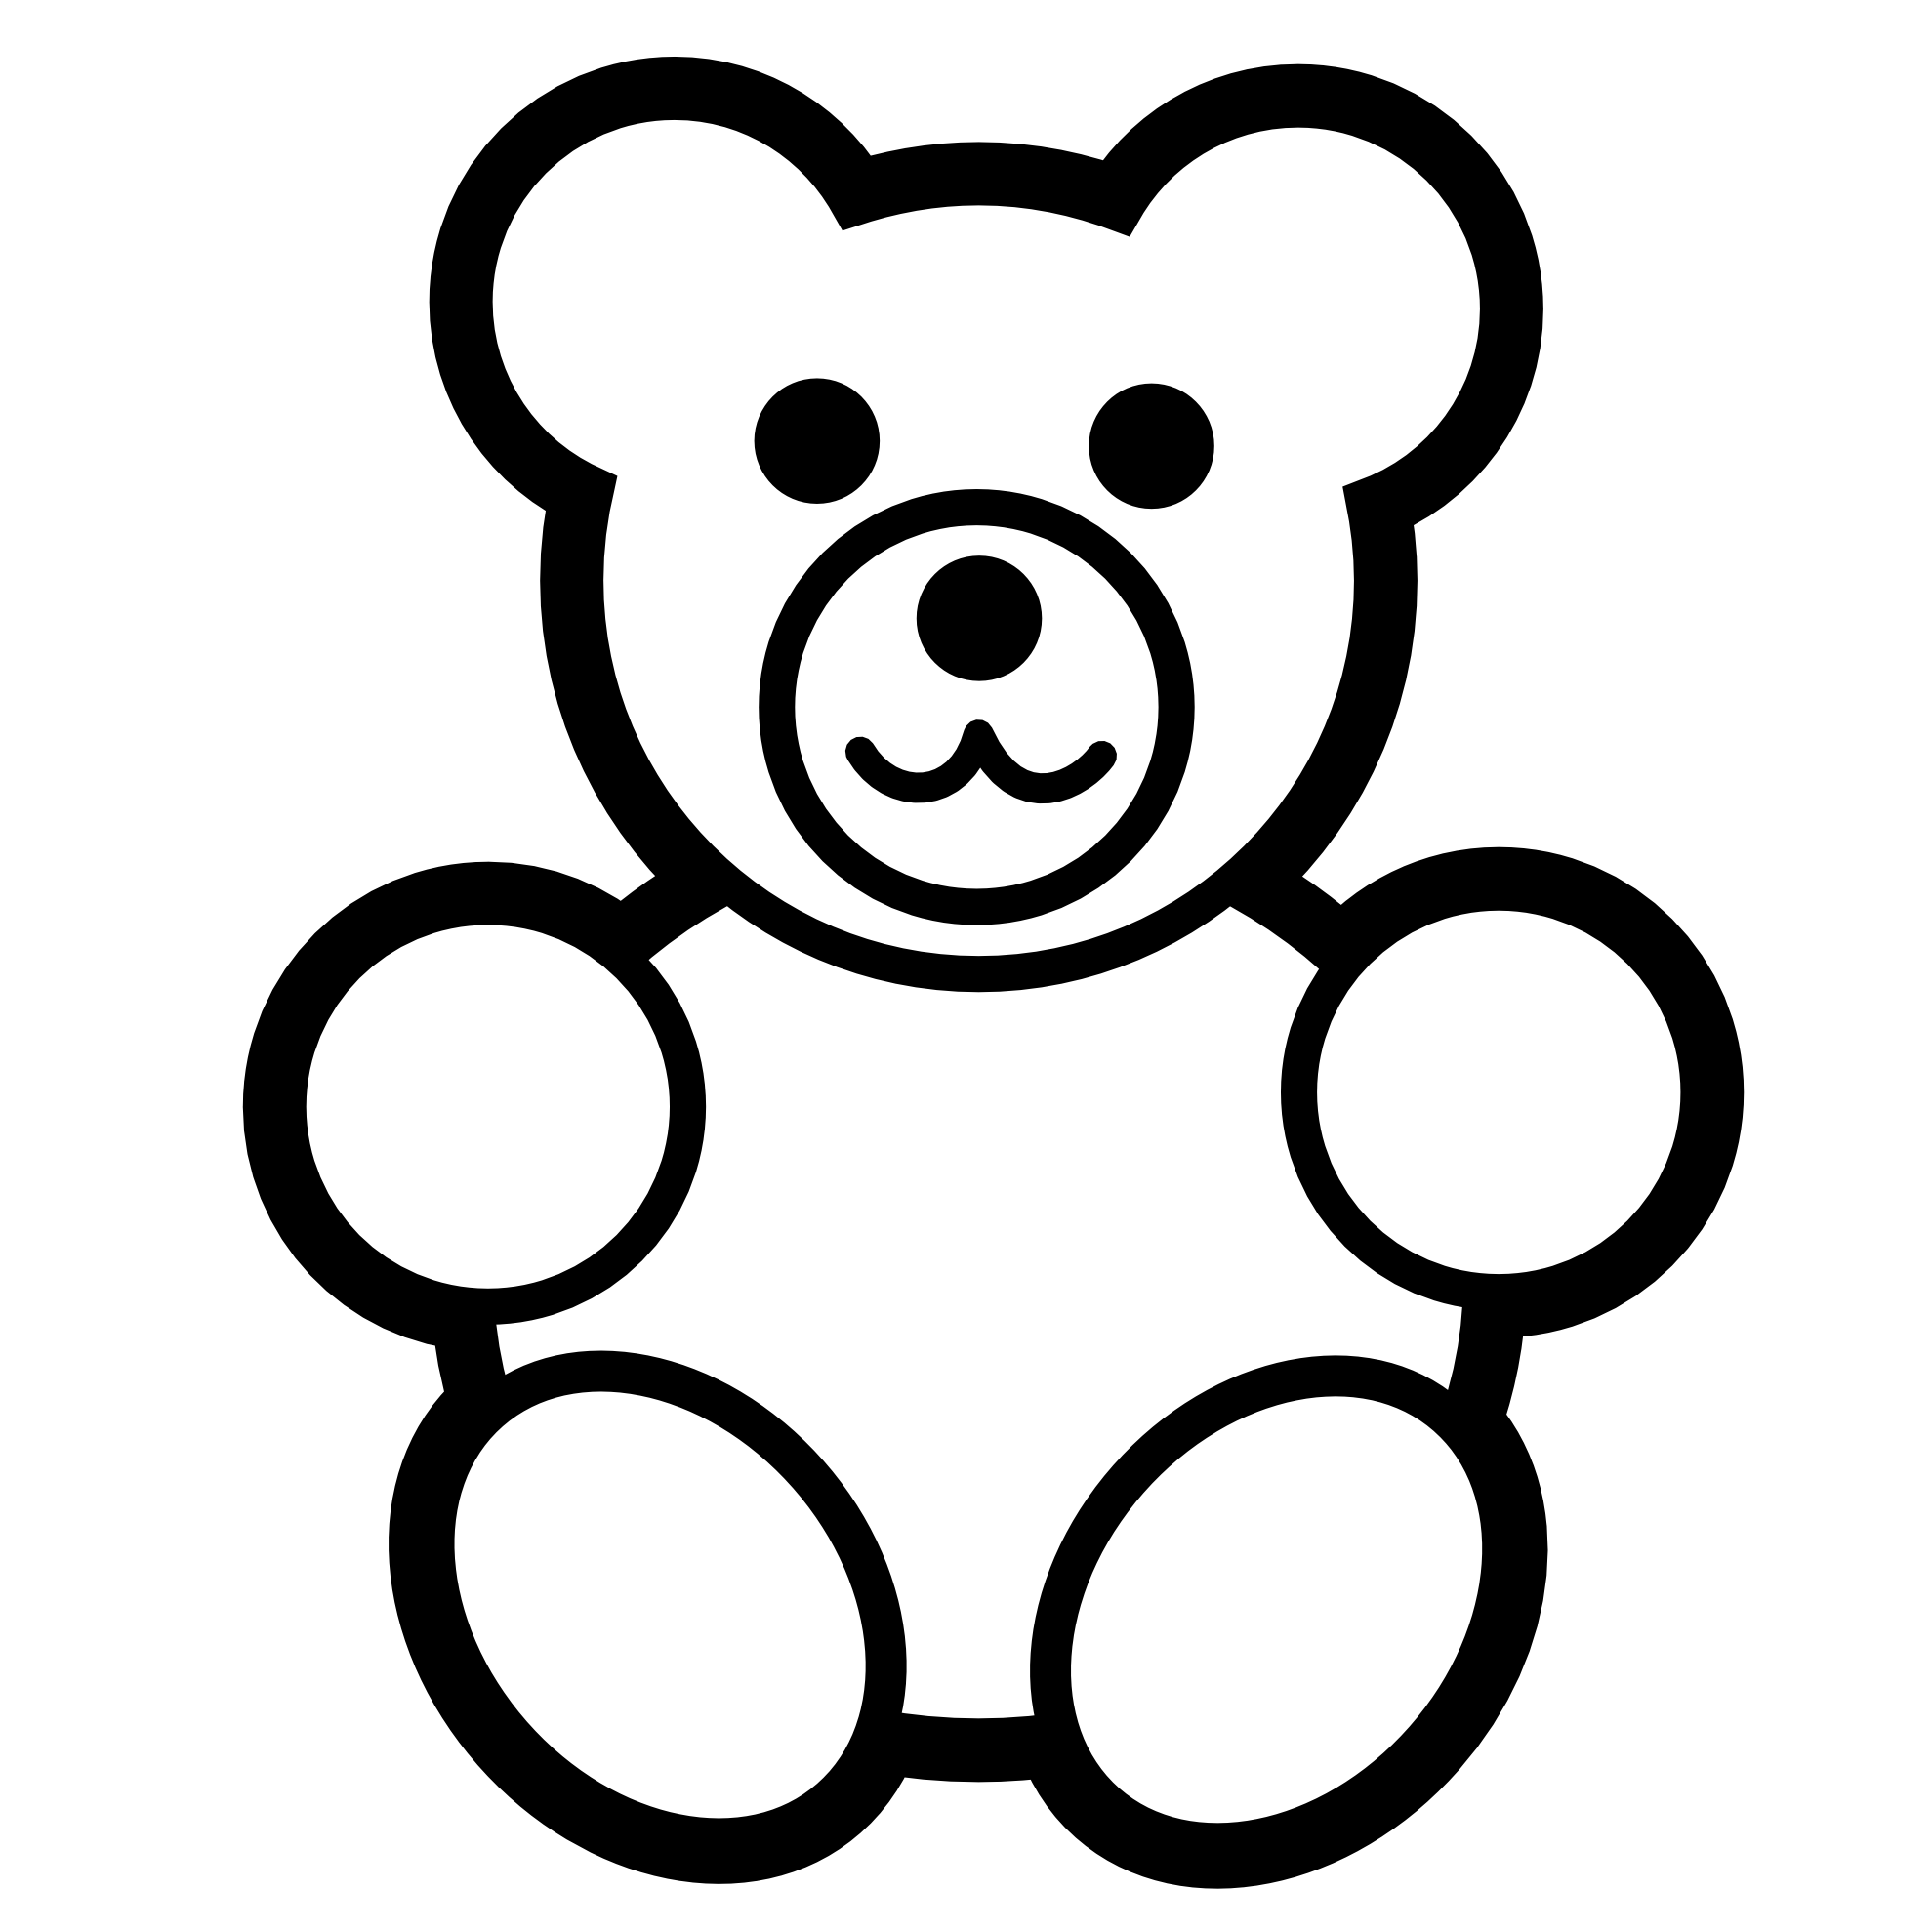 clipartist.net Clip Art pitr teddy bear icon black white ...